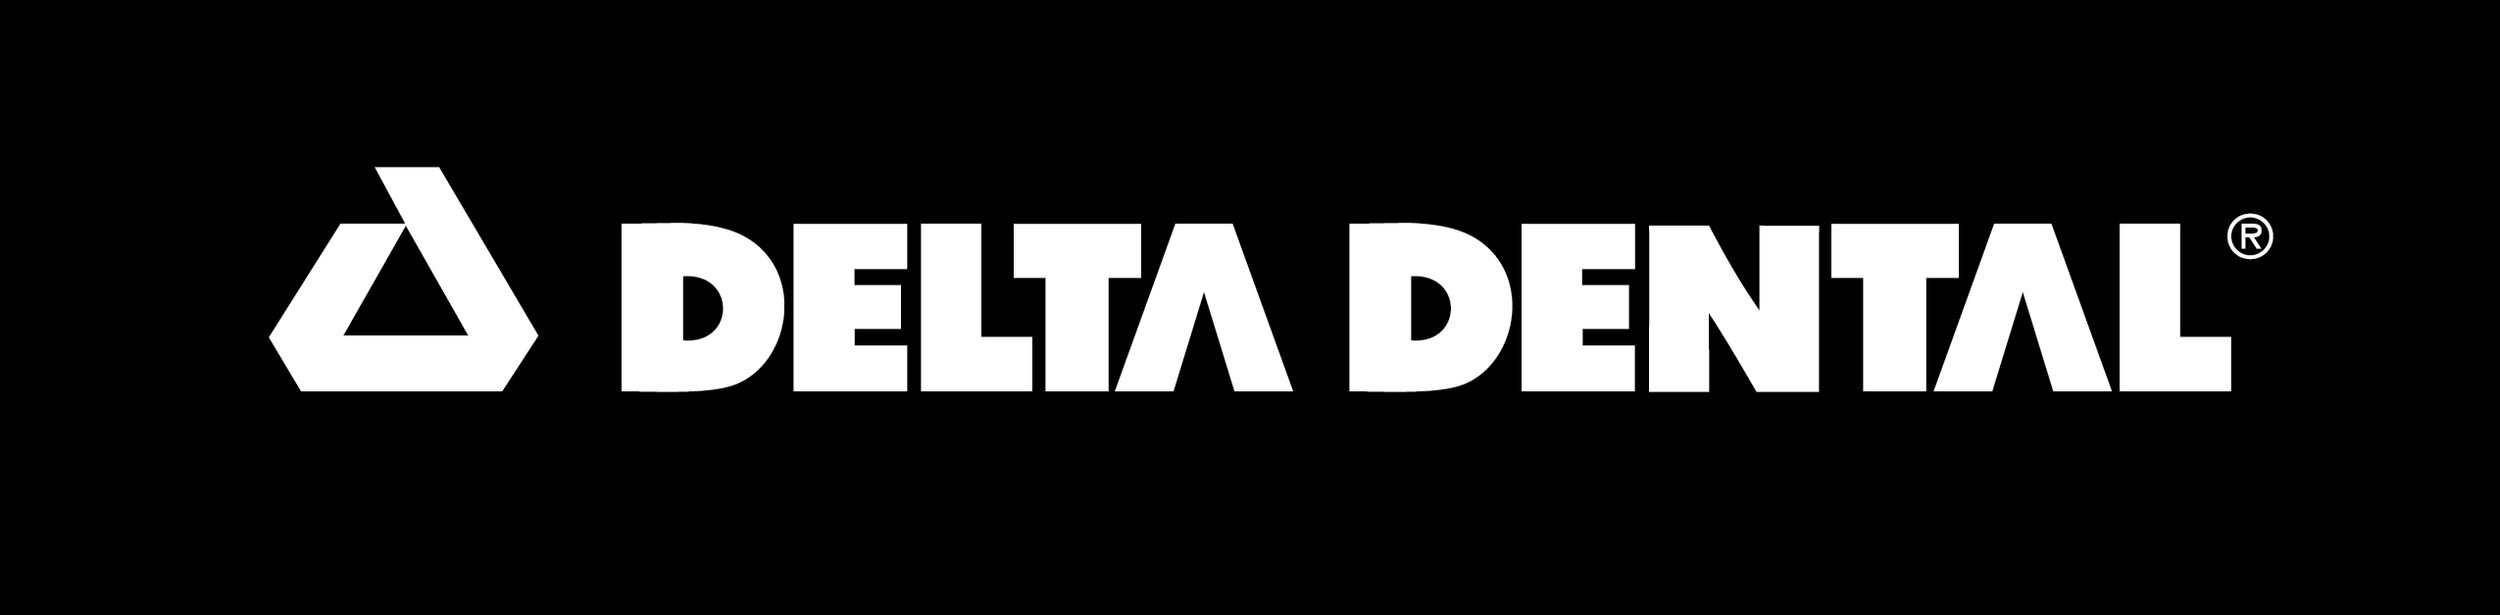 delta dental logo black.jpg